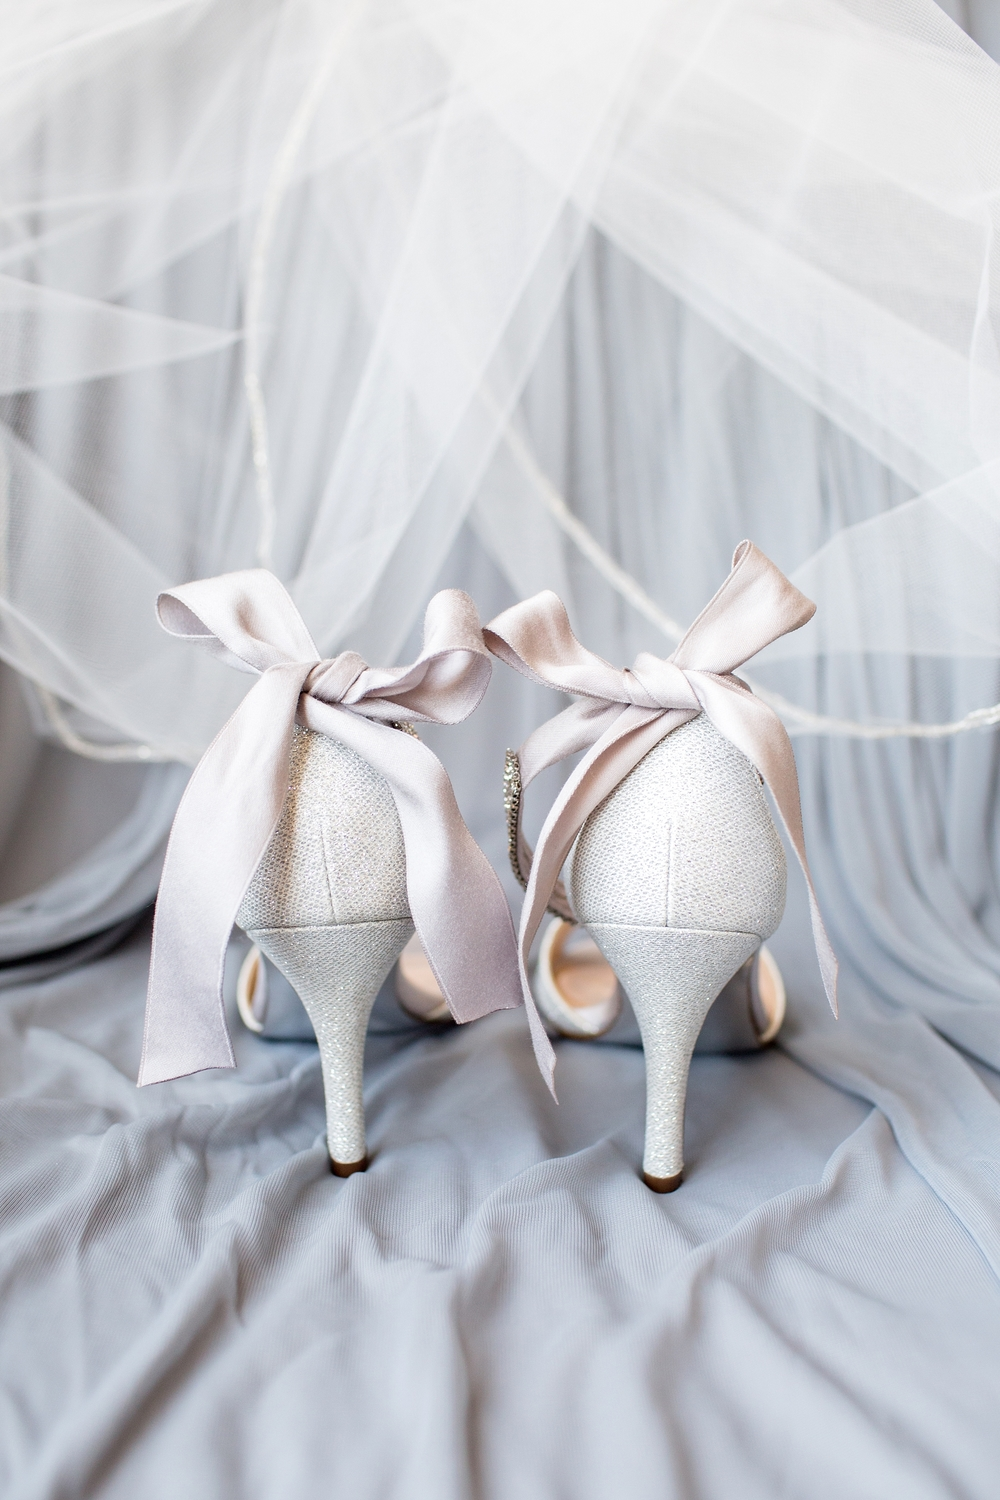 These shoes are incredible!! So romantic!